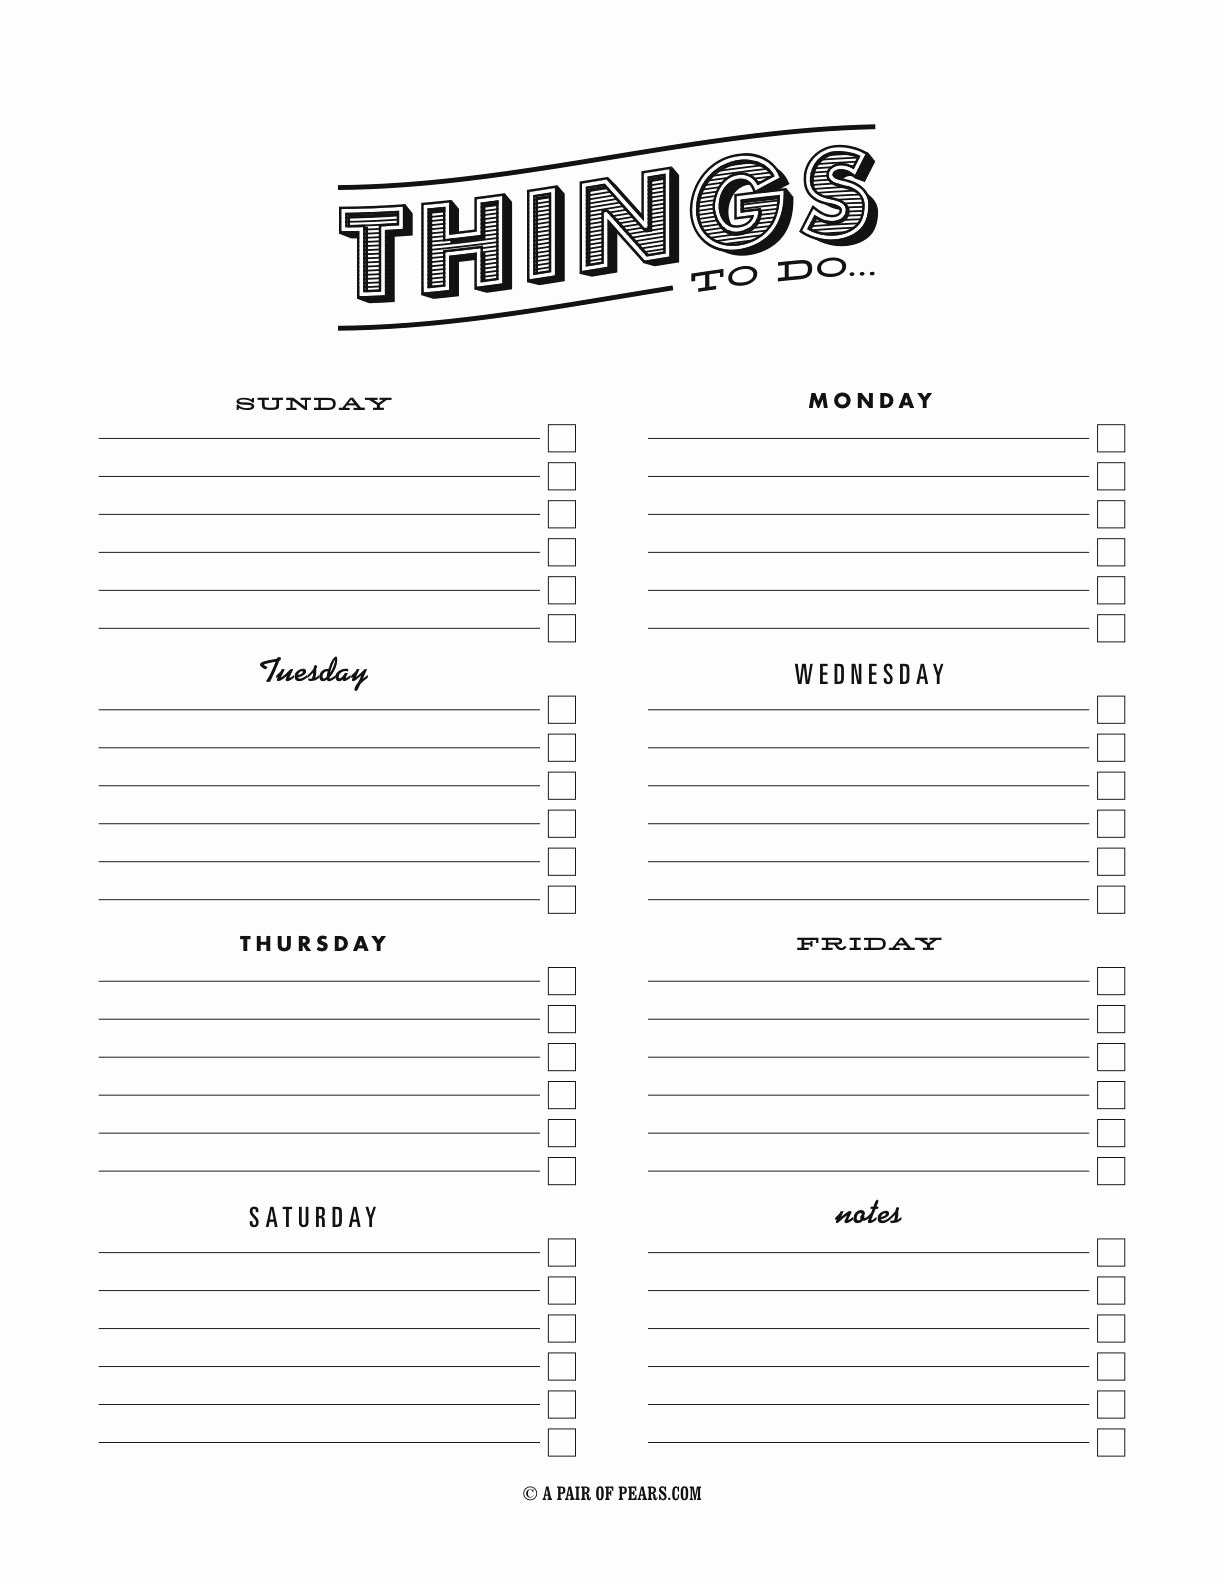 Things to Do Lists Template Lovely Things to Do Template Pdf Fancy to Do List